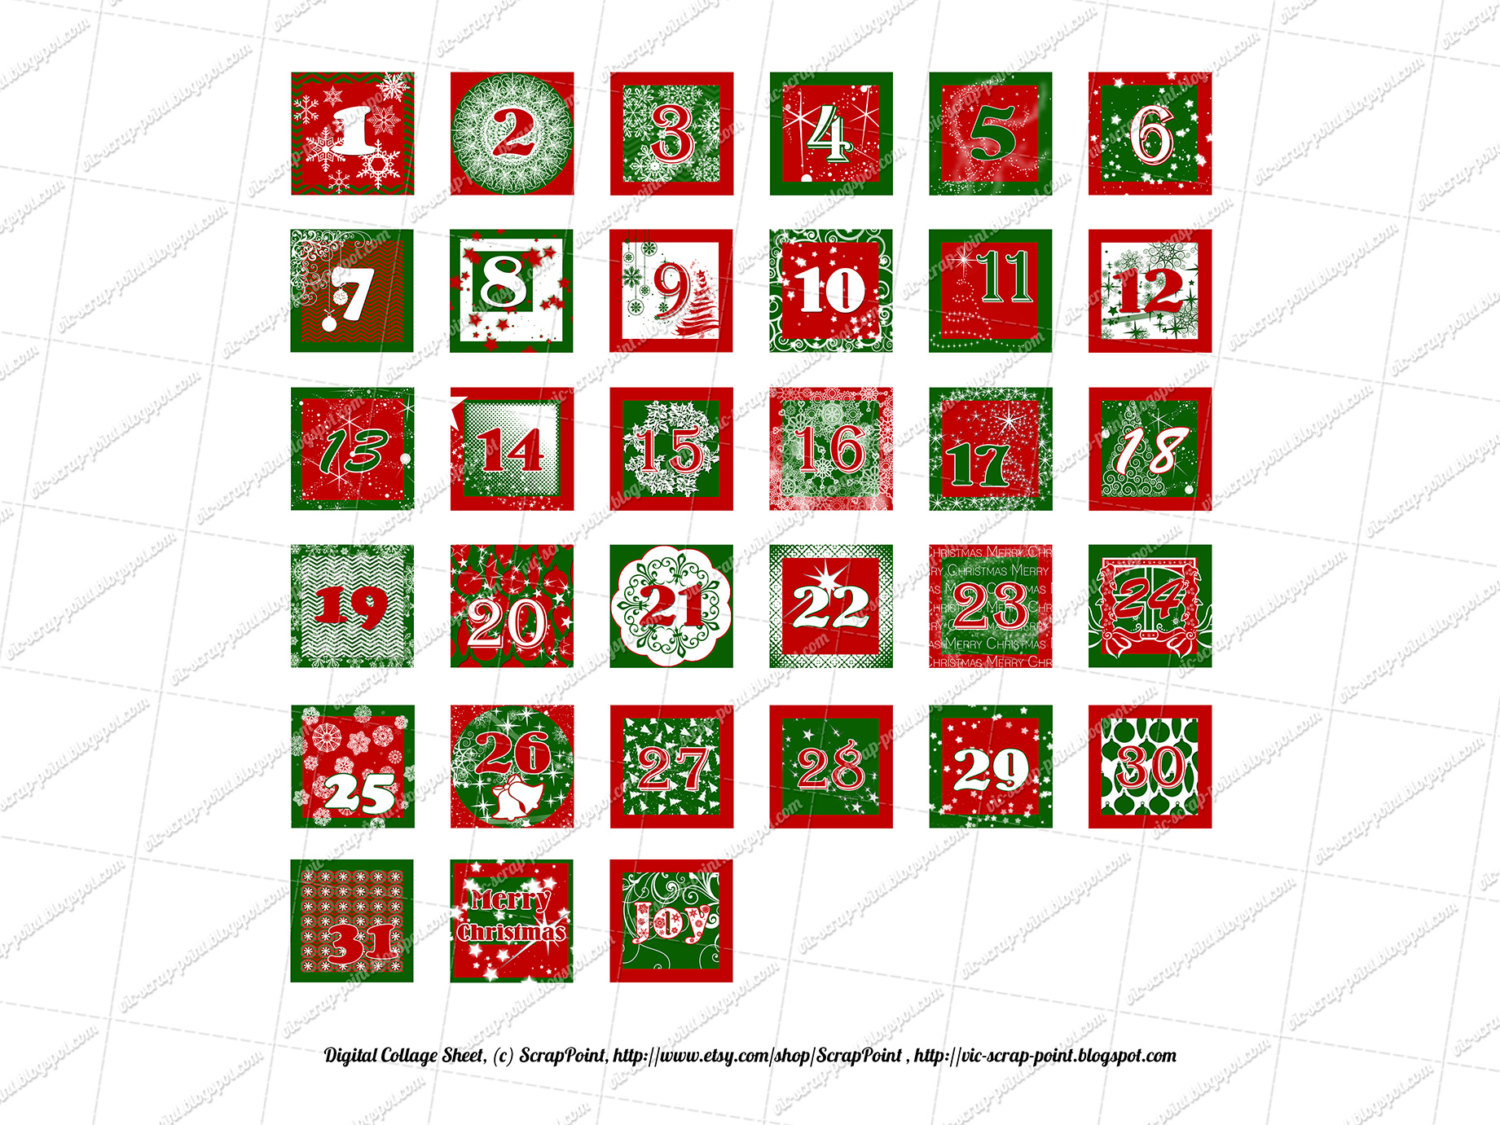 Best Images of Christmas Numbers Printable - Free Printable Christmas ...